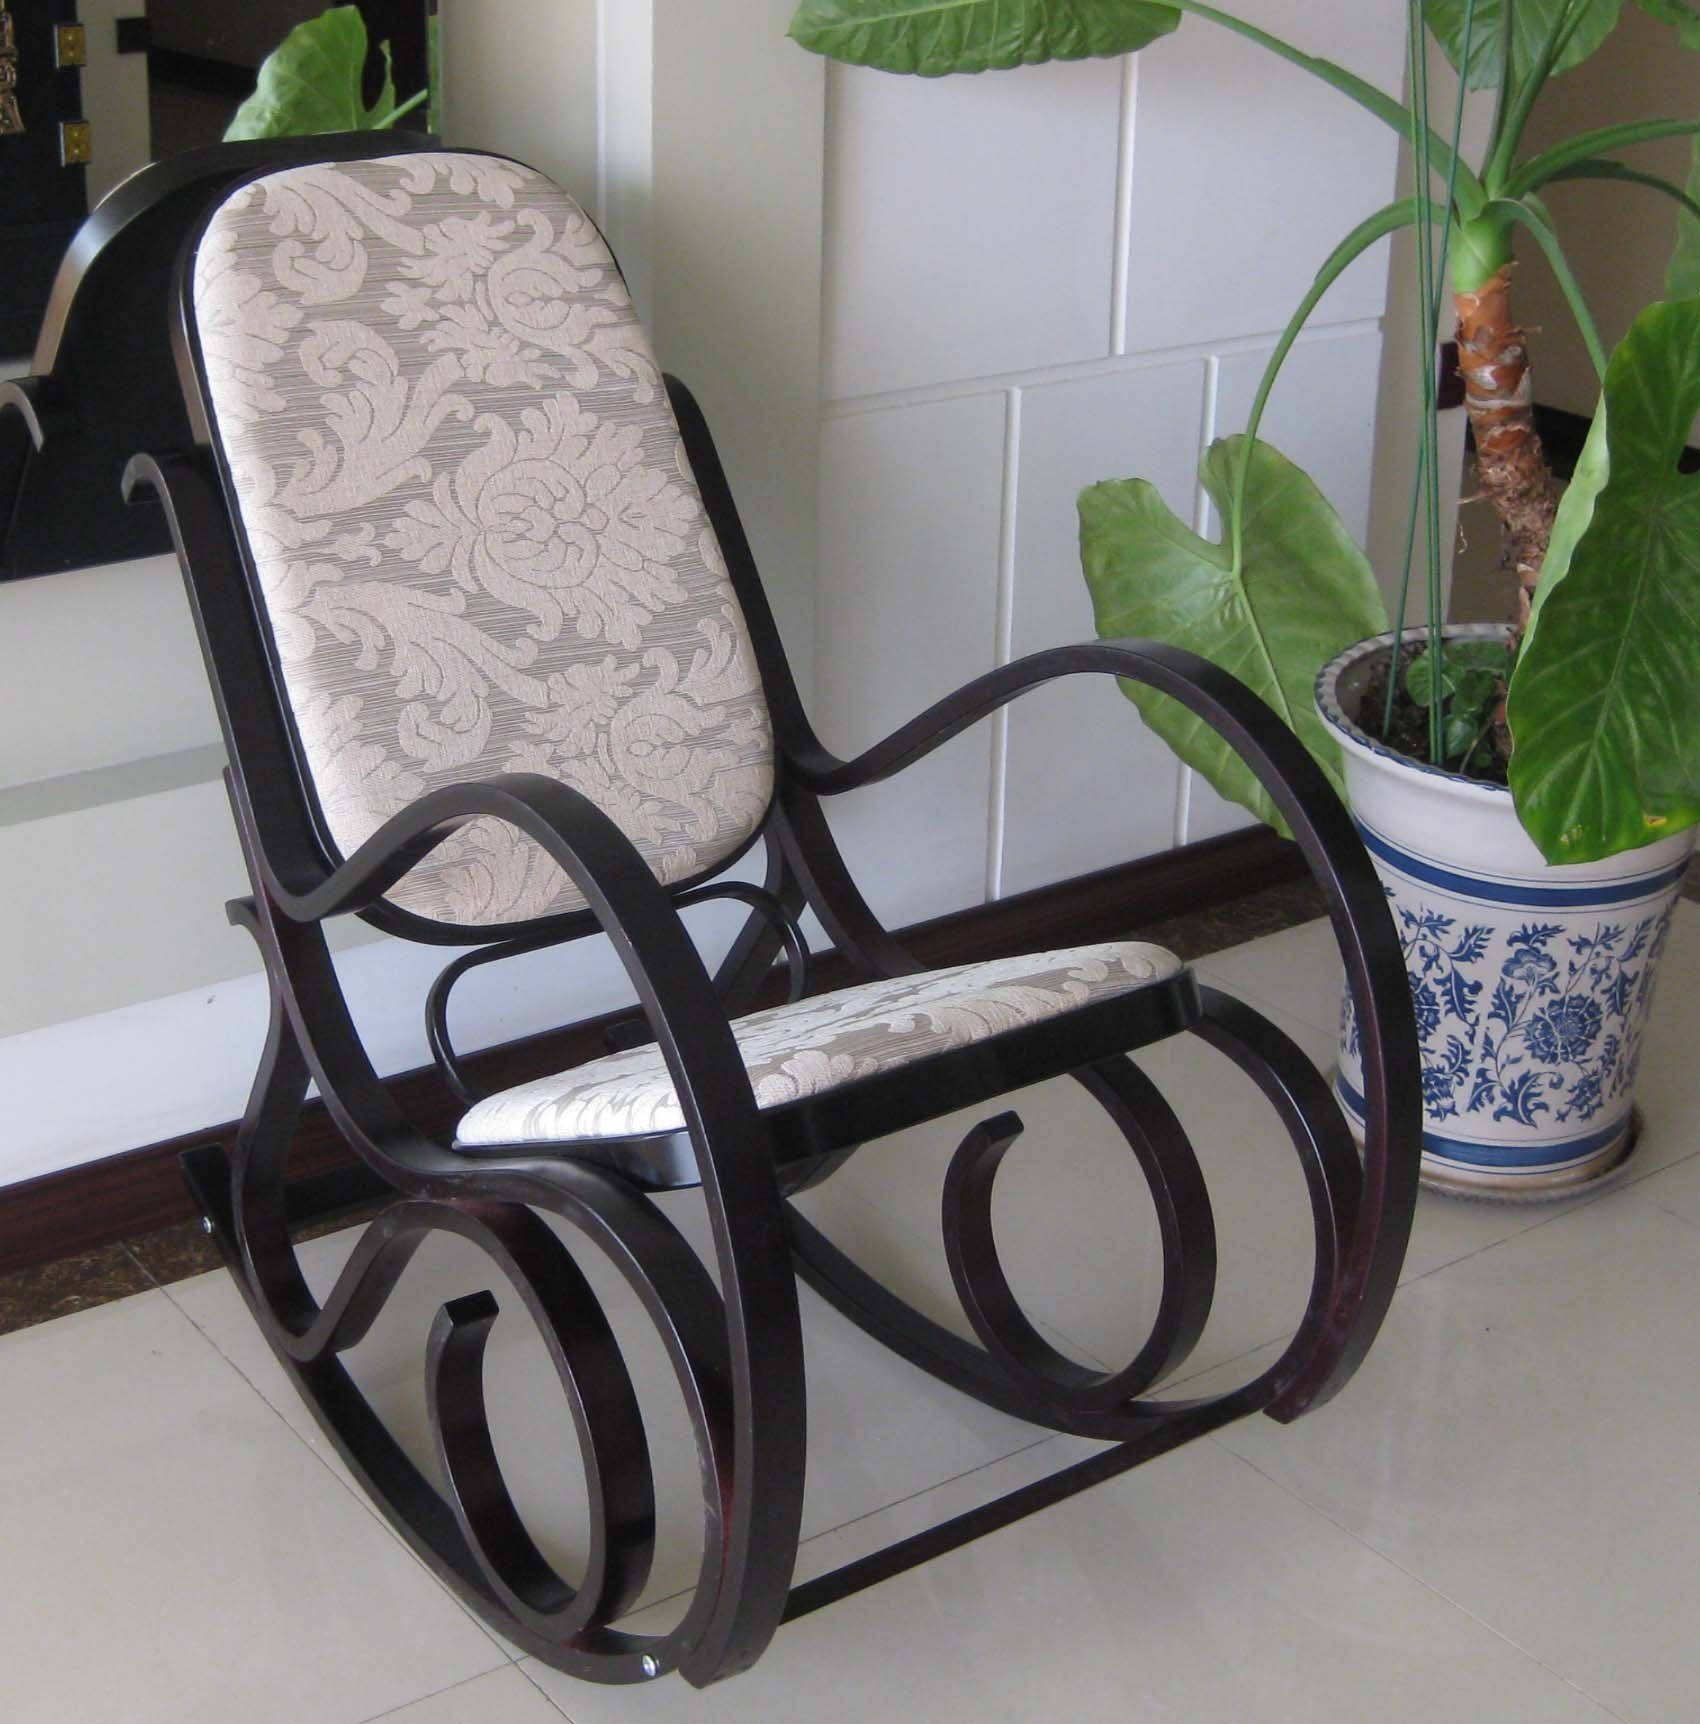 Bentwood Rocking Chair Re-Do Inspiration  Craft Ideas  Pinterest